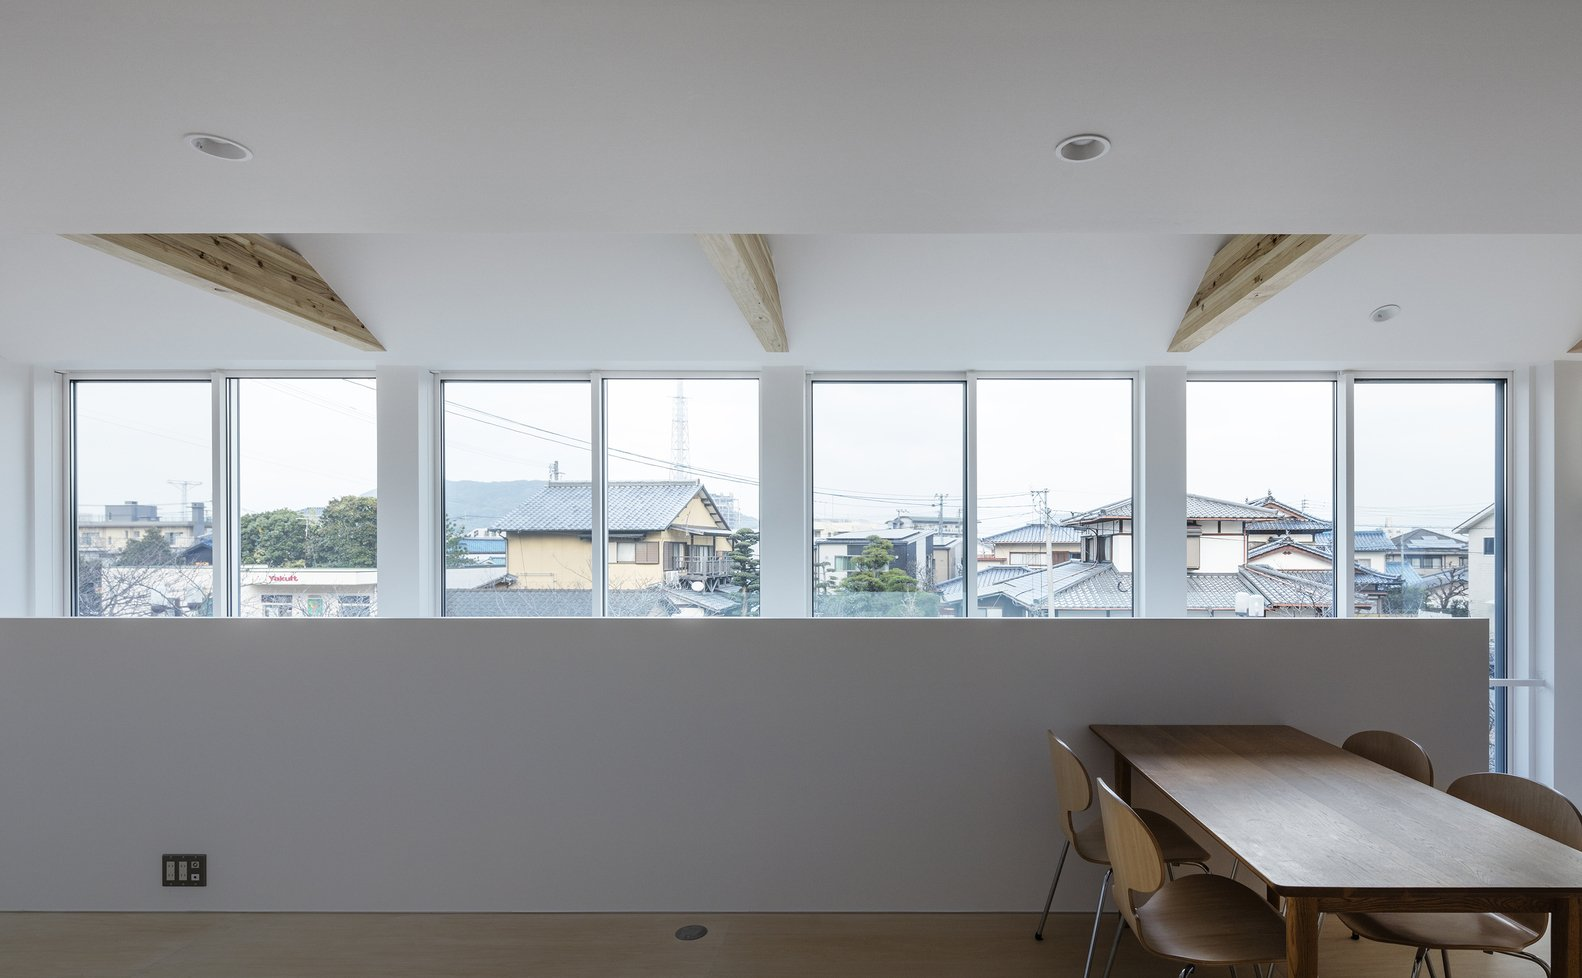 Photo 6 of 7 in House in Futako by Yabashi Architects & Associates